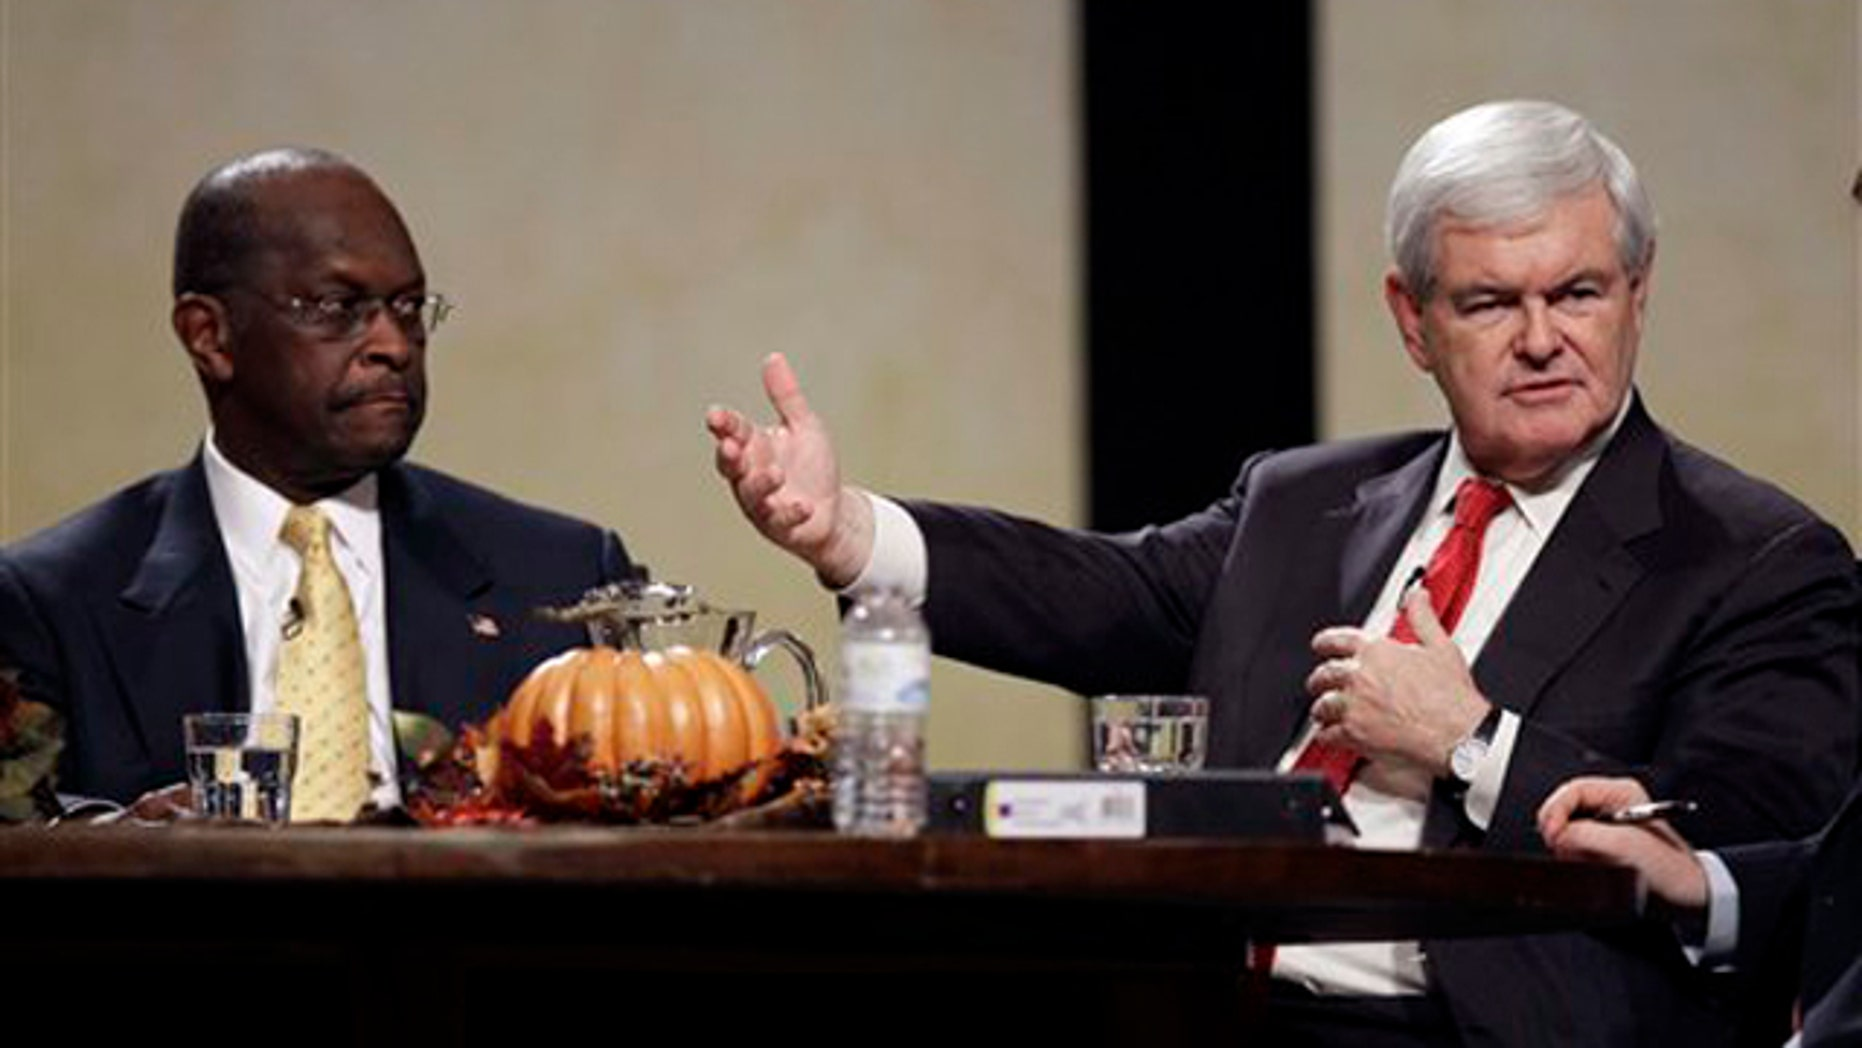 Nov. 19, 2011: Former House Speaker Newt Gingrich speaks during the Thanksgiving Family Forum, as former CEO of Godfather's Pizza Herman Cain looks on, in Des Moines, Iowa.